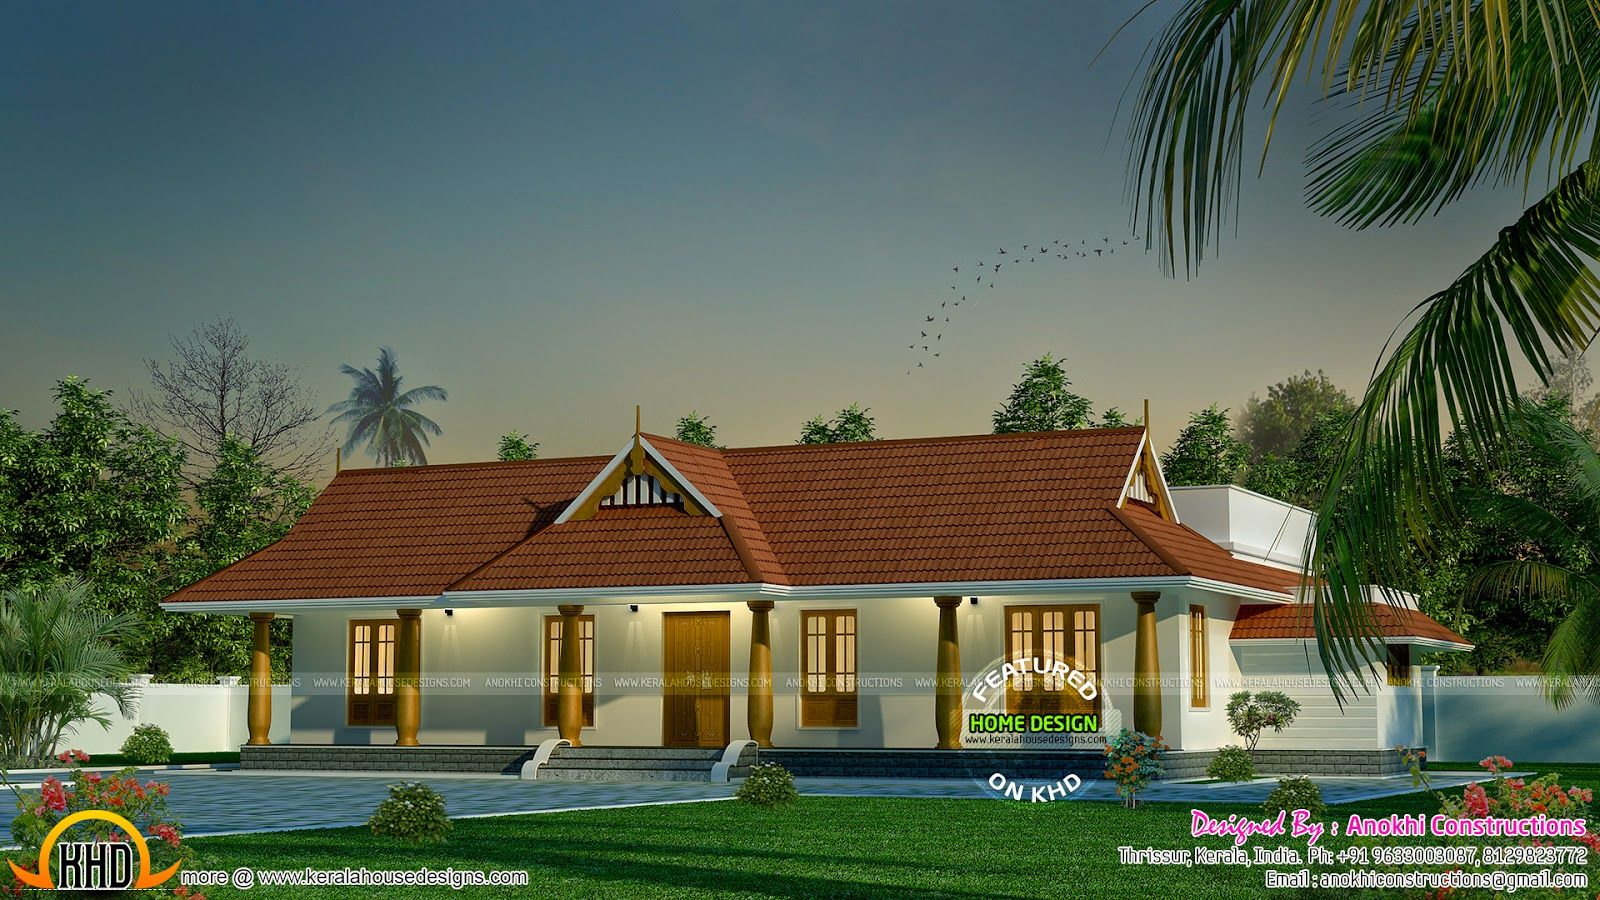 kerala style house jpg 1 600 215 900 pixels with images